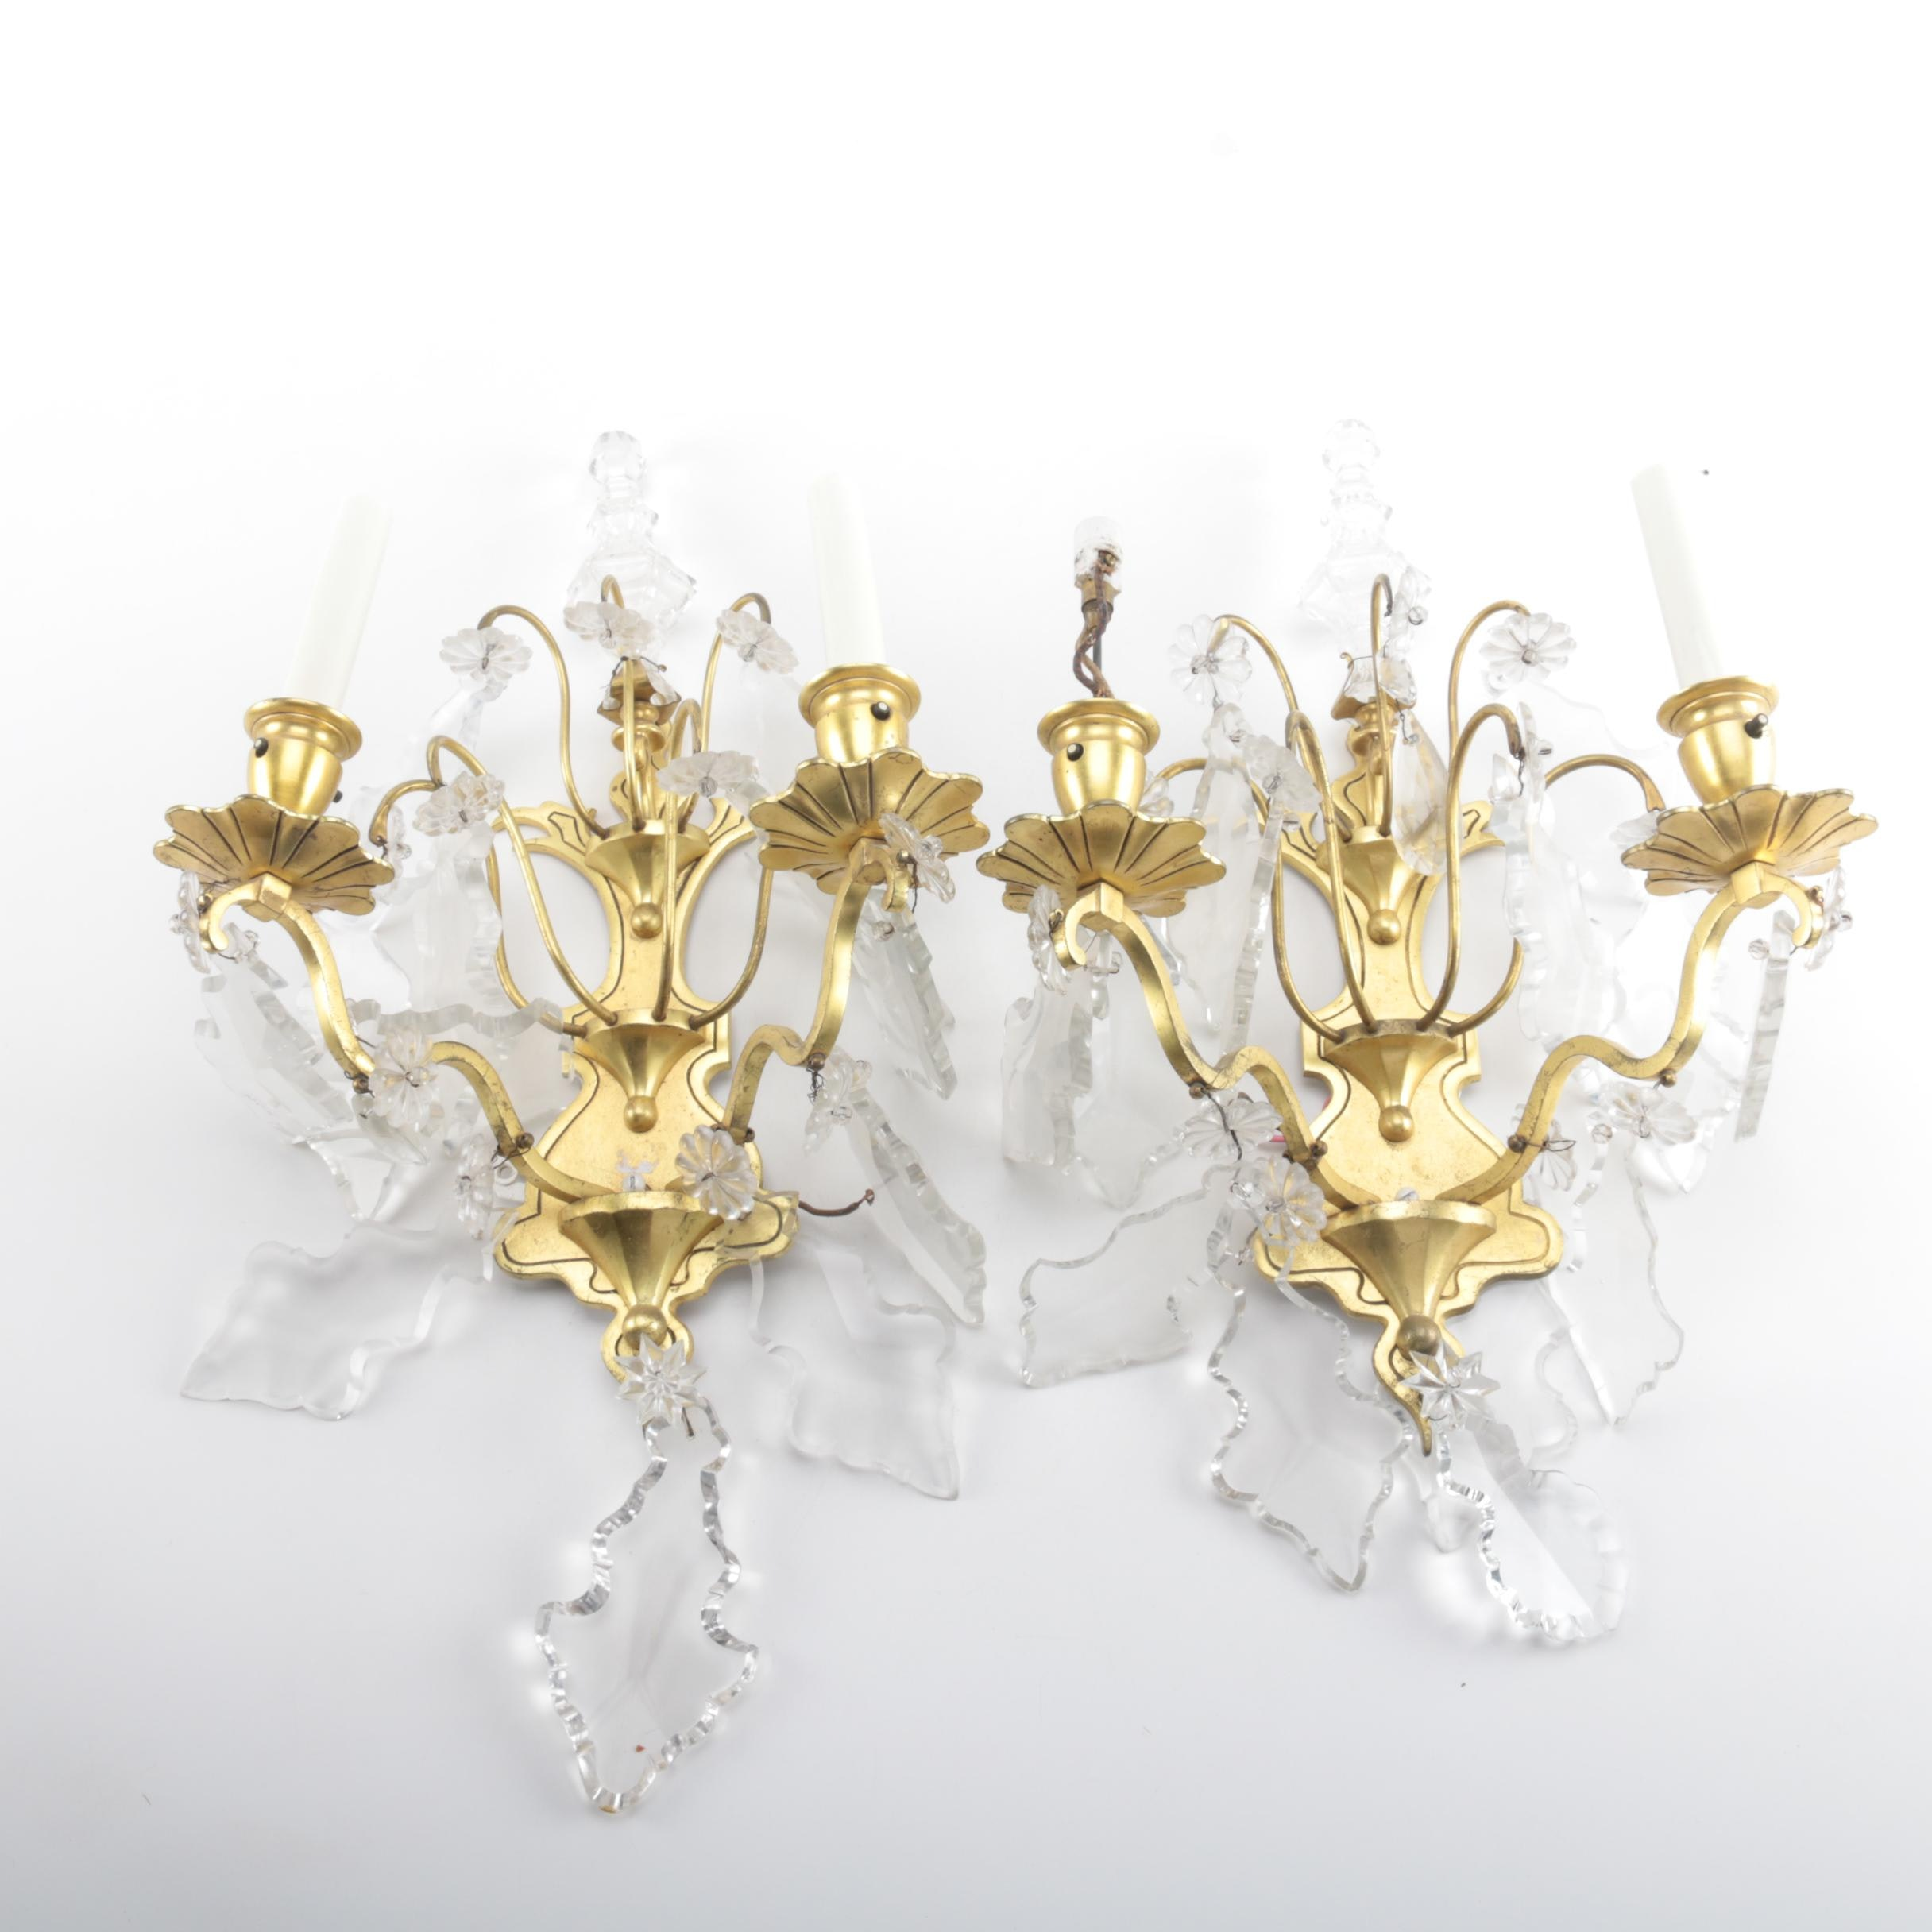 Chandelier Style Sconces.